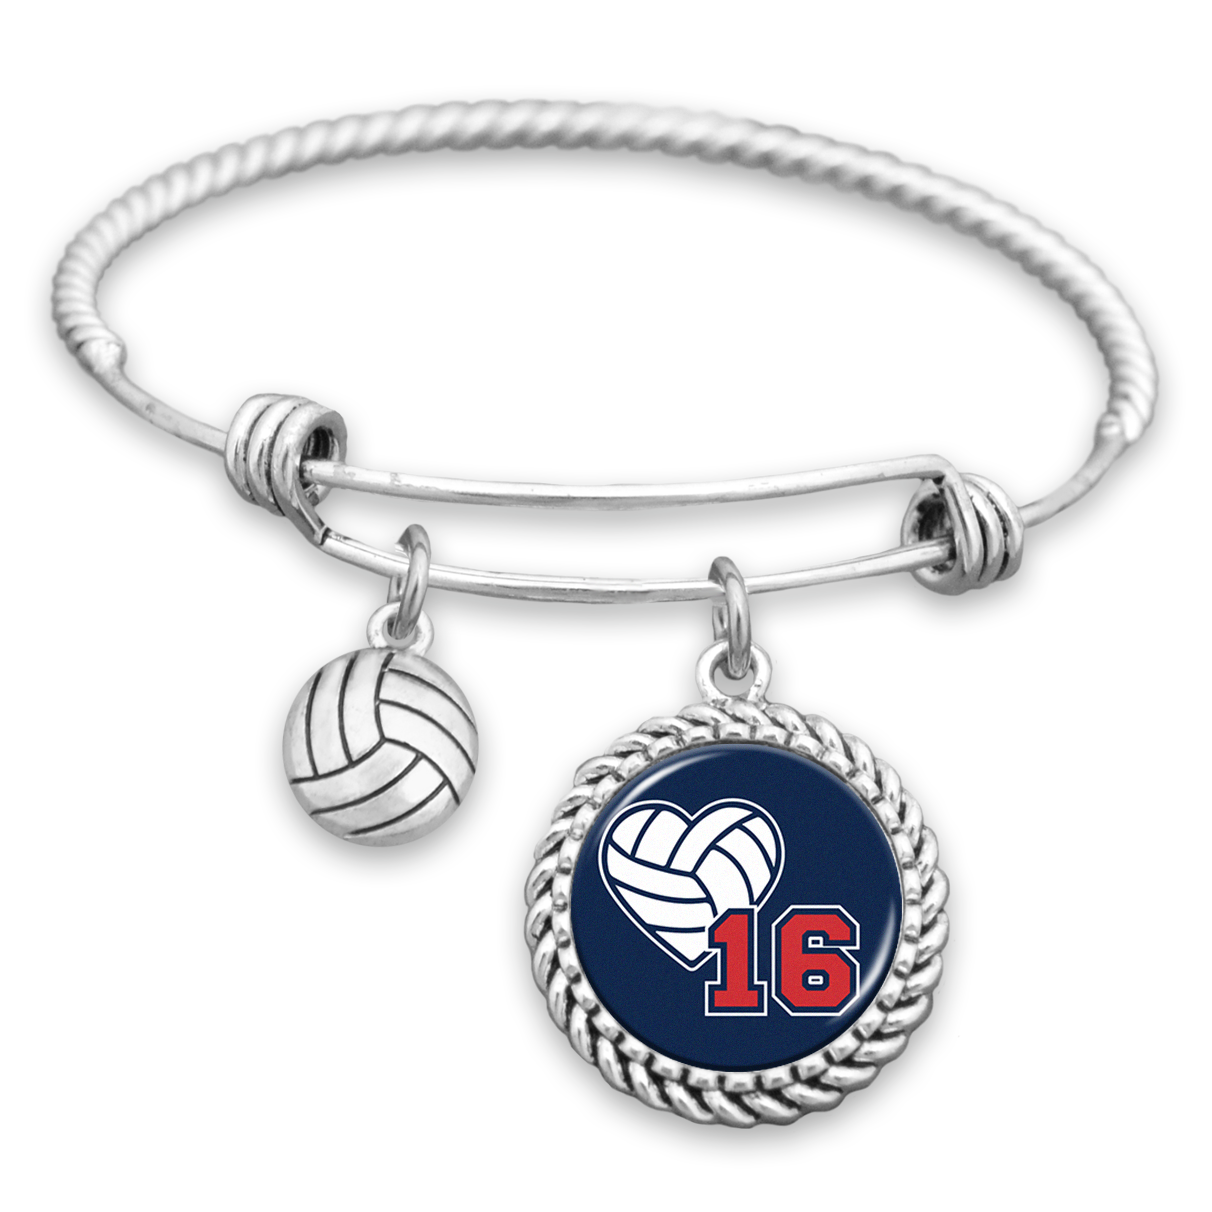 Volleyball Personalized Number Charm Bracelet